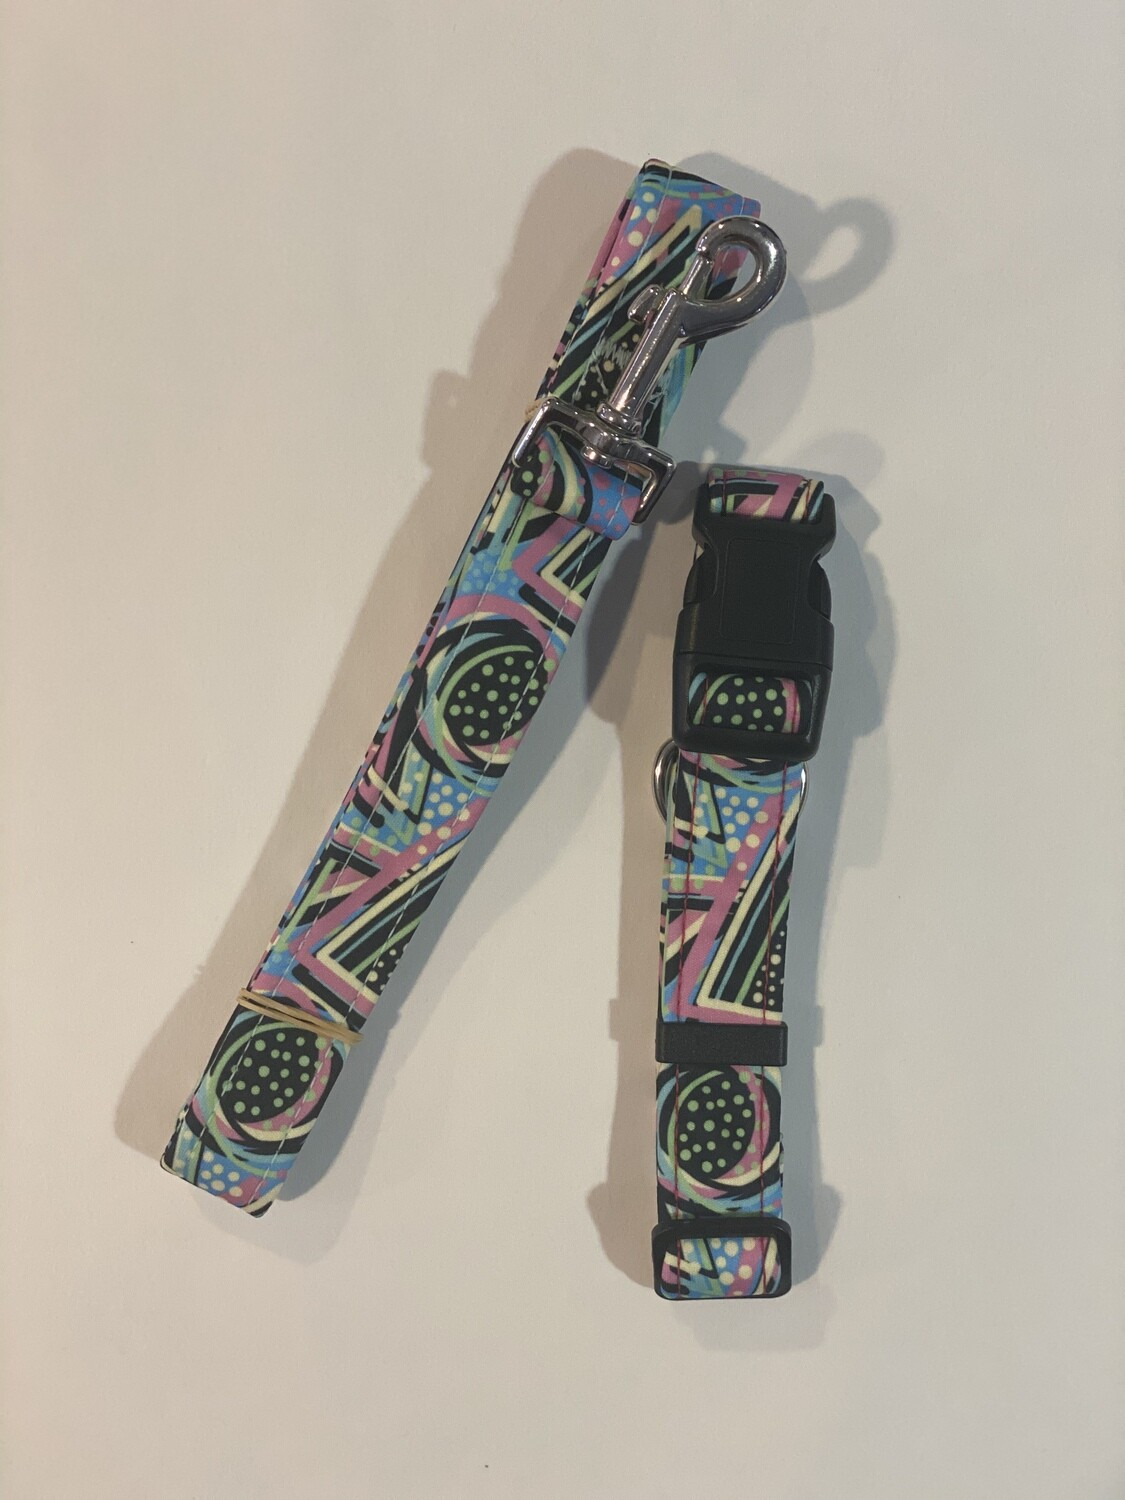 Collar and Lead Set - Medium. Geometric shapes and dots.